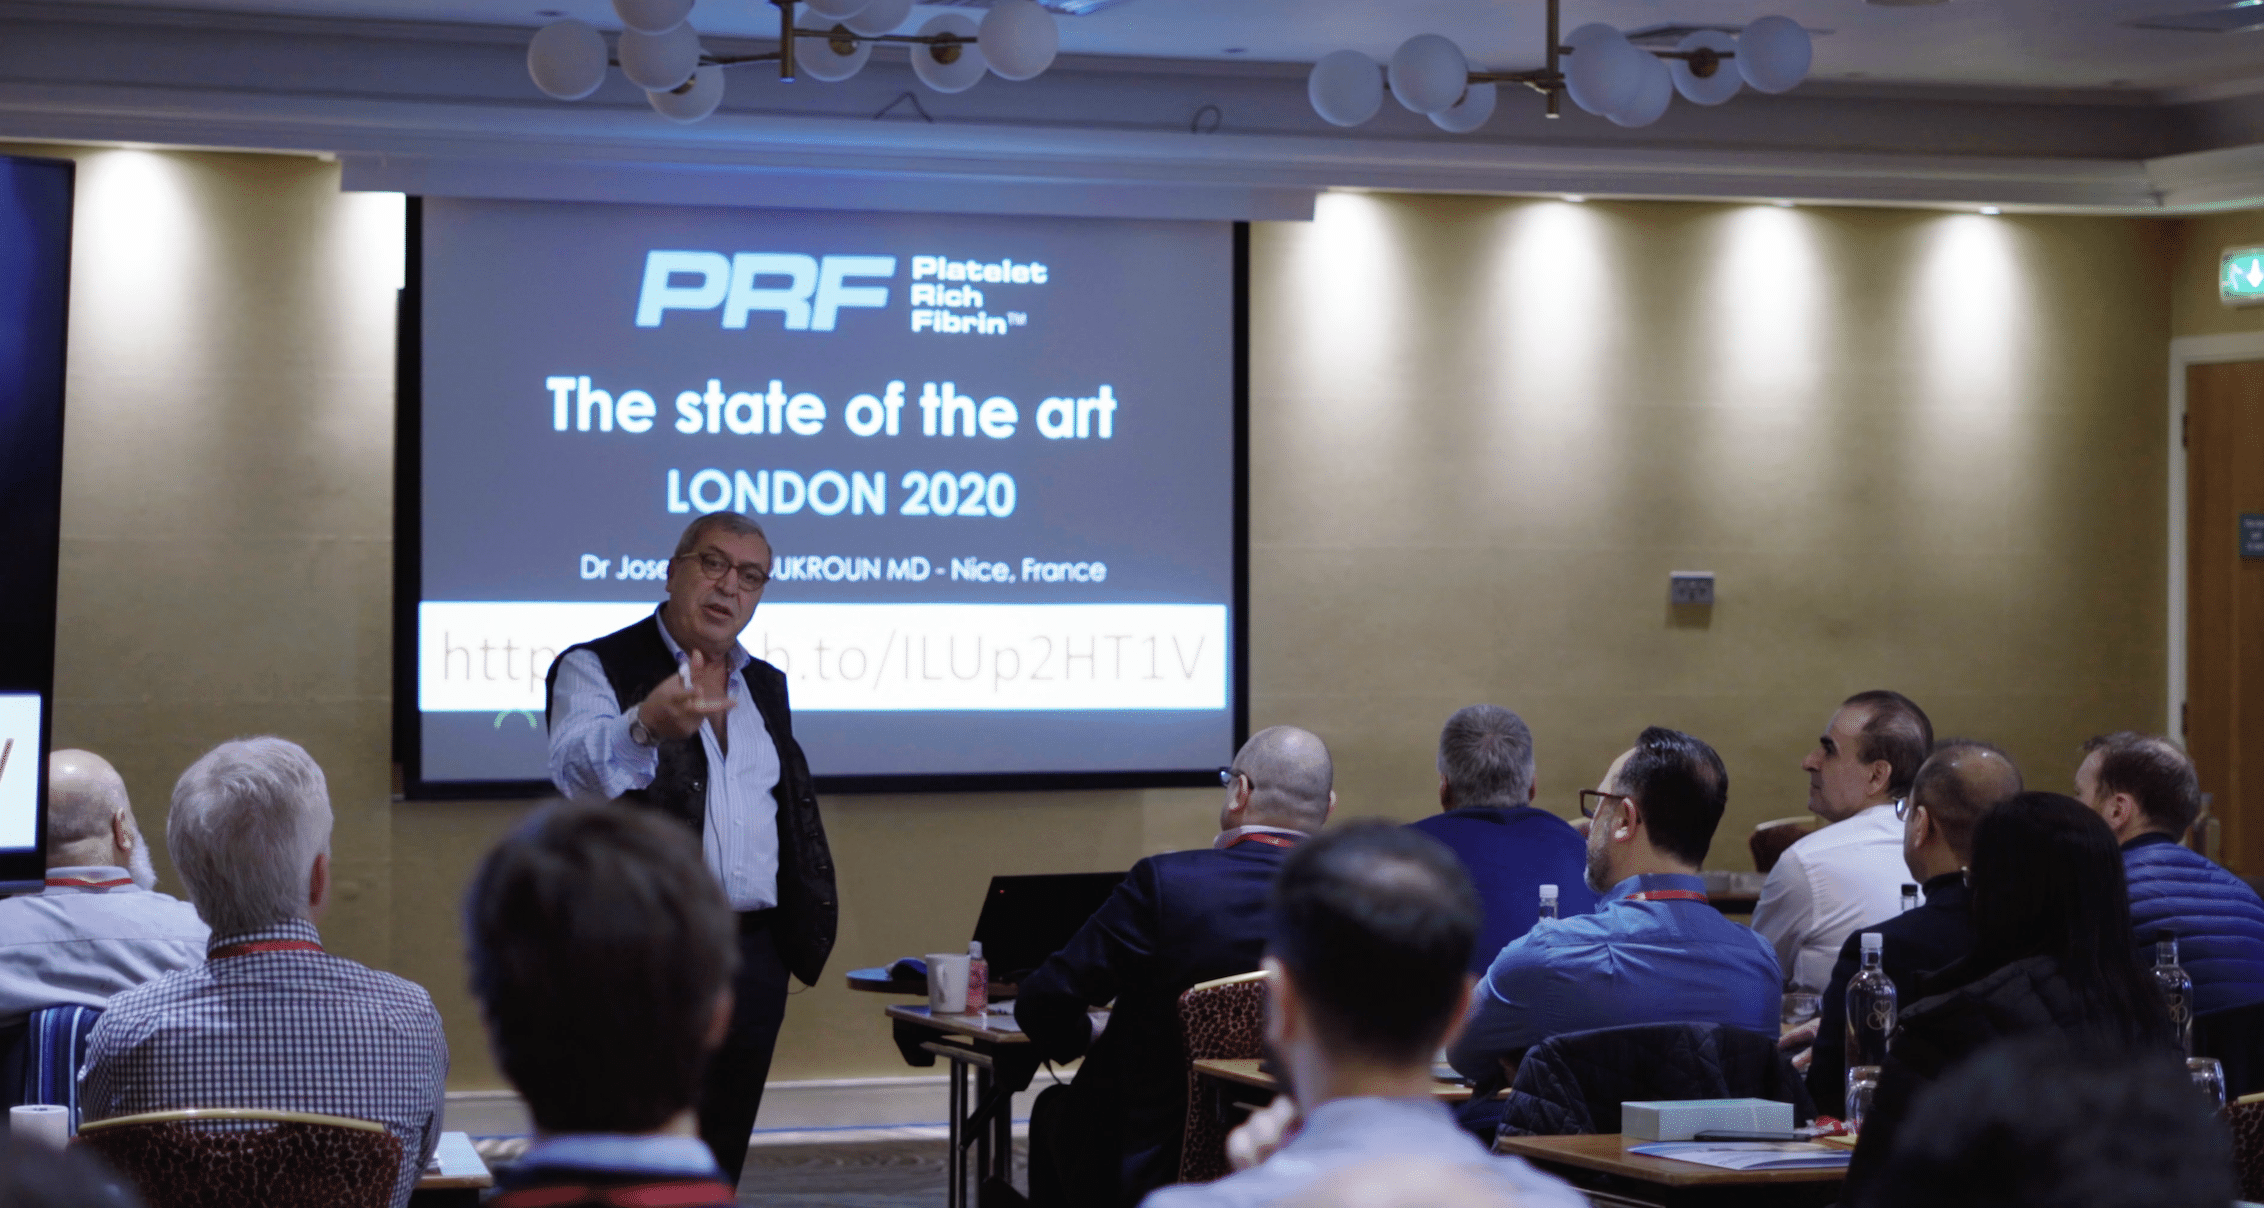 Over 70 implant dentists attended the PRF course in London